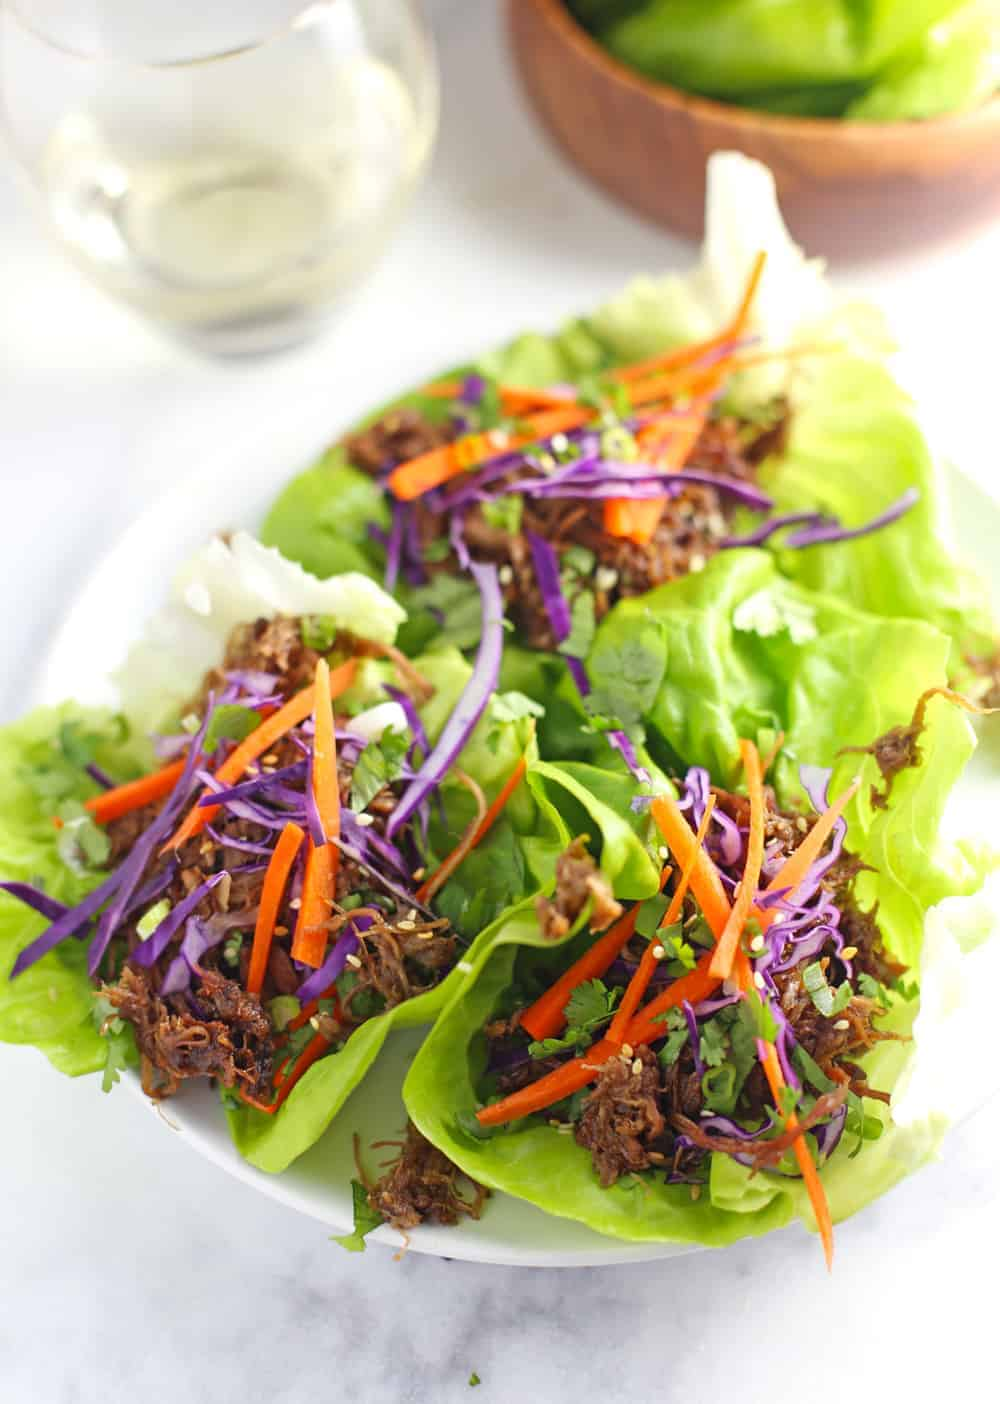 Pulled Pork lettuce wraps on a white plate, garnished with carrots and cabbage